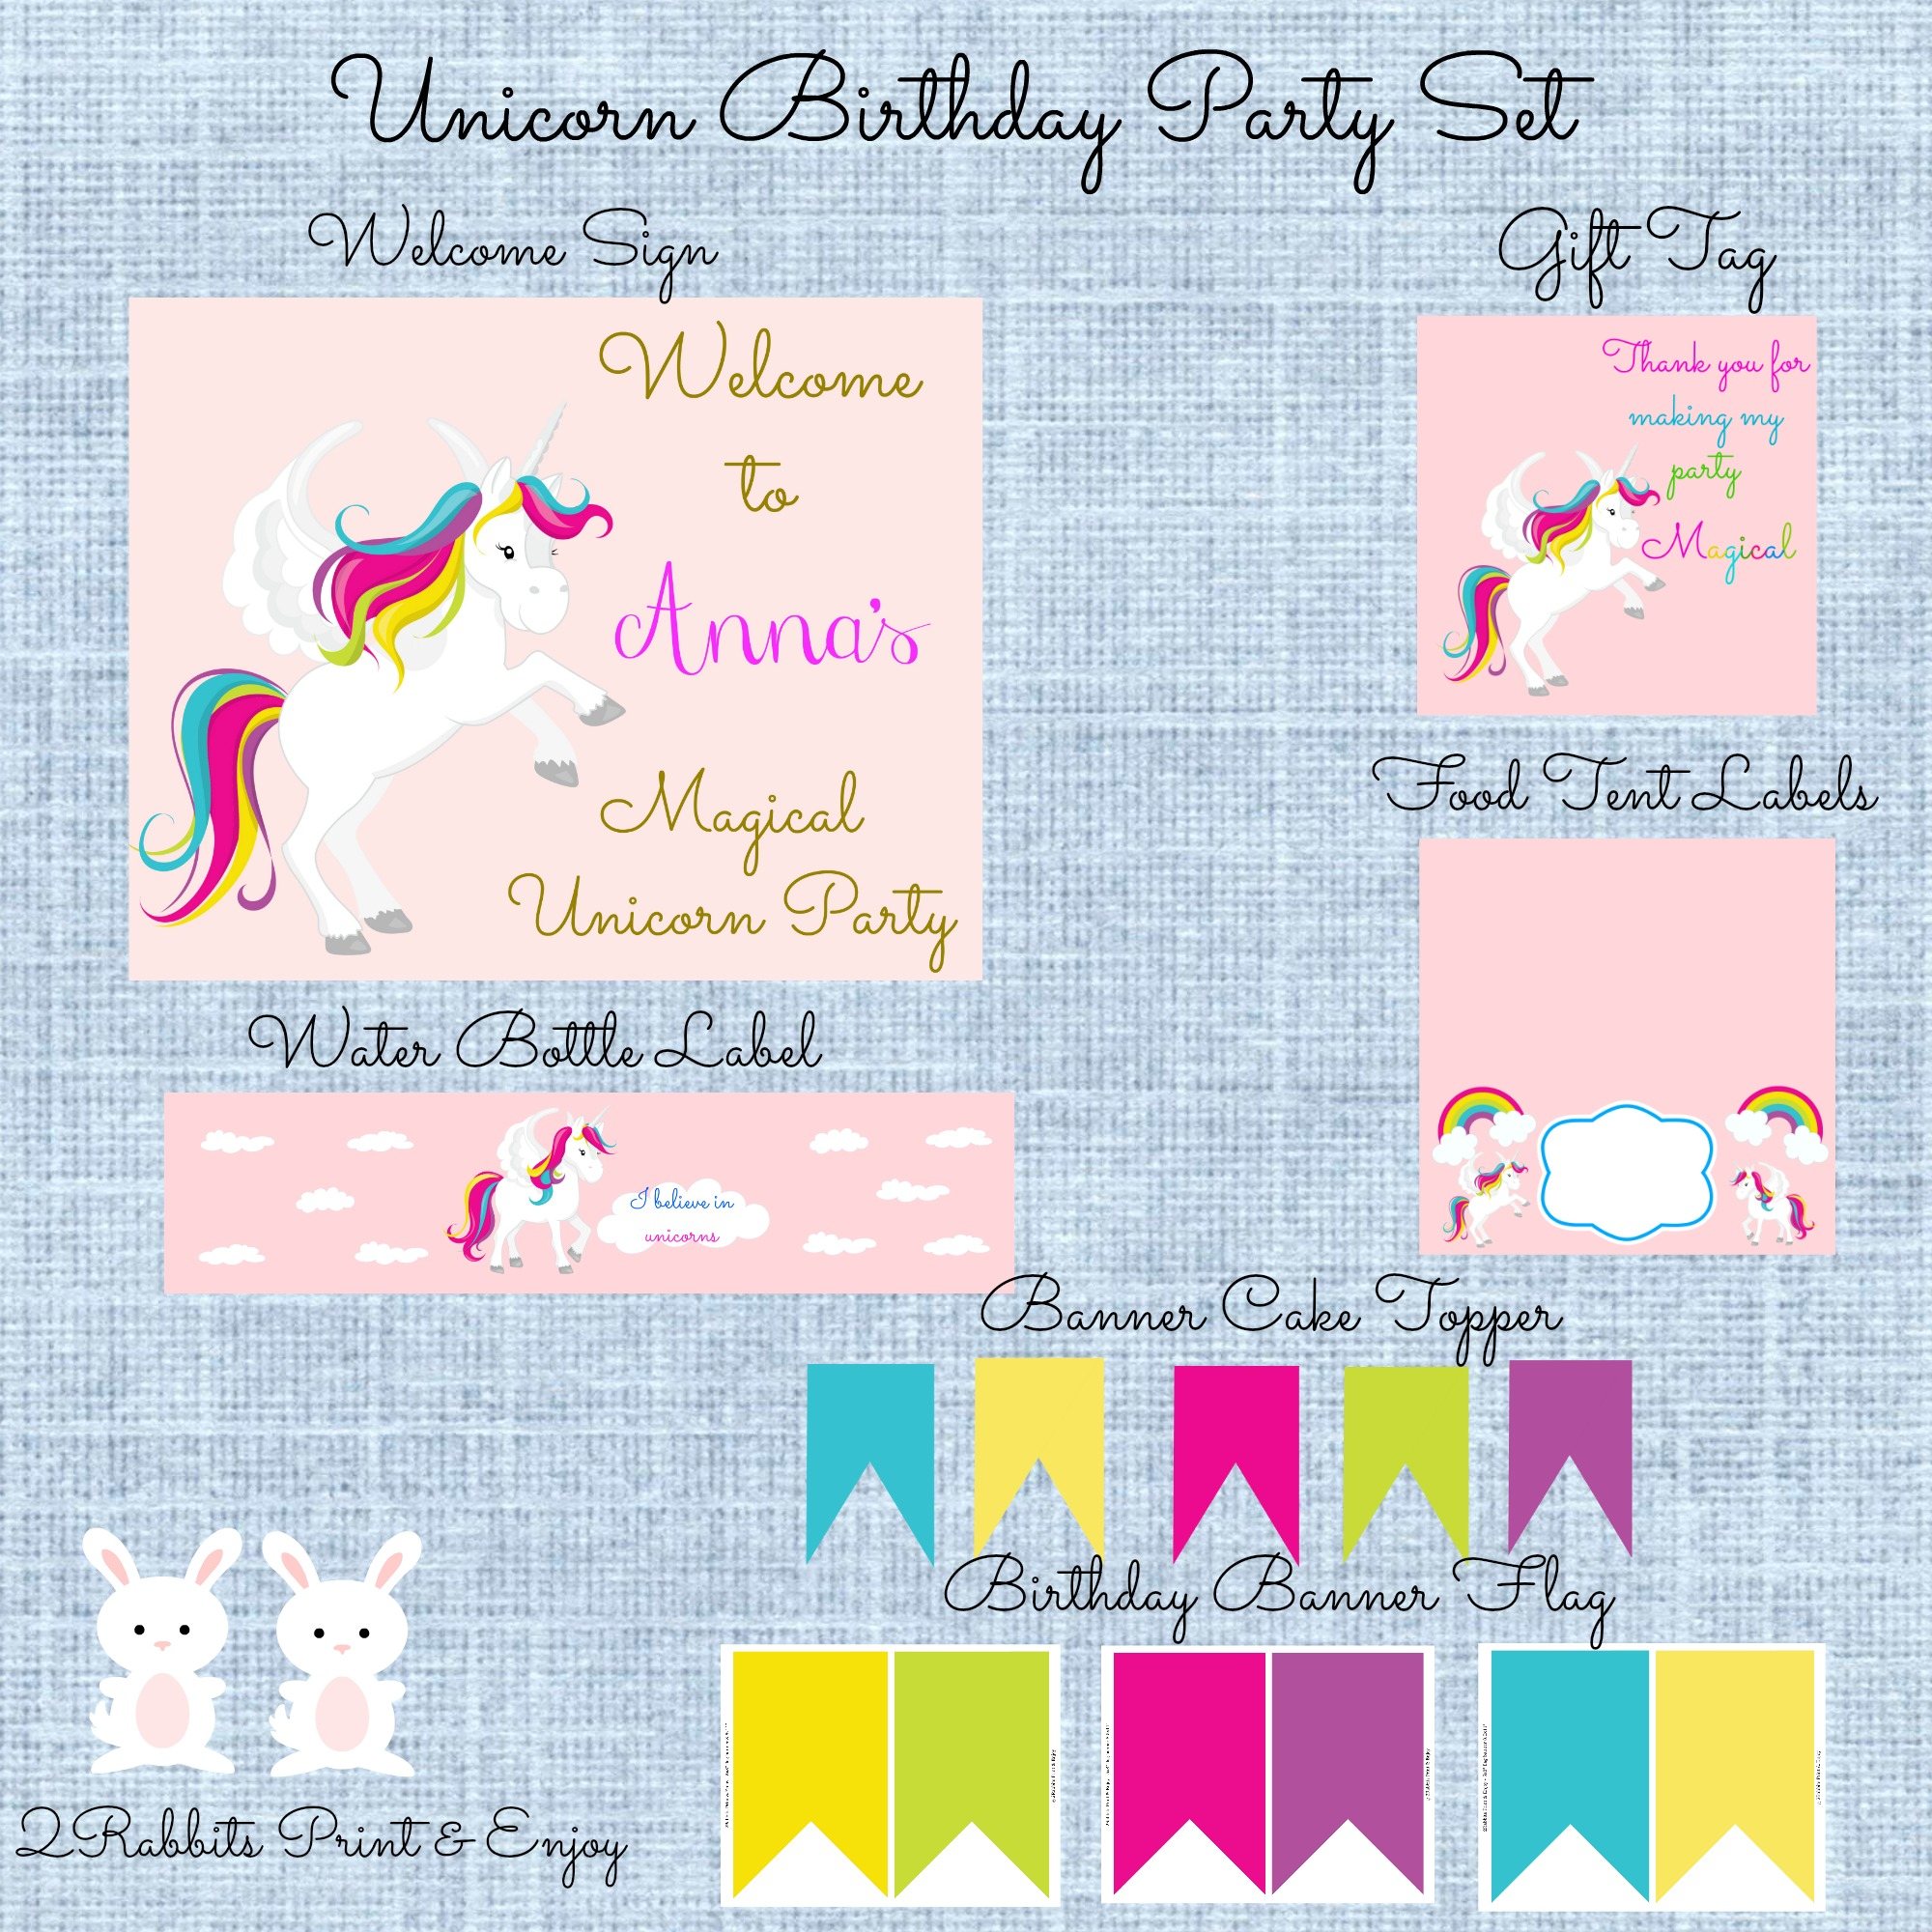 It's just an image of Enterprising Free Unicorn Birthday Printables